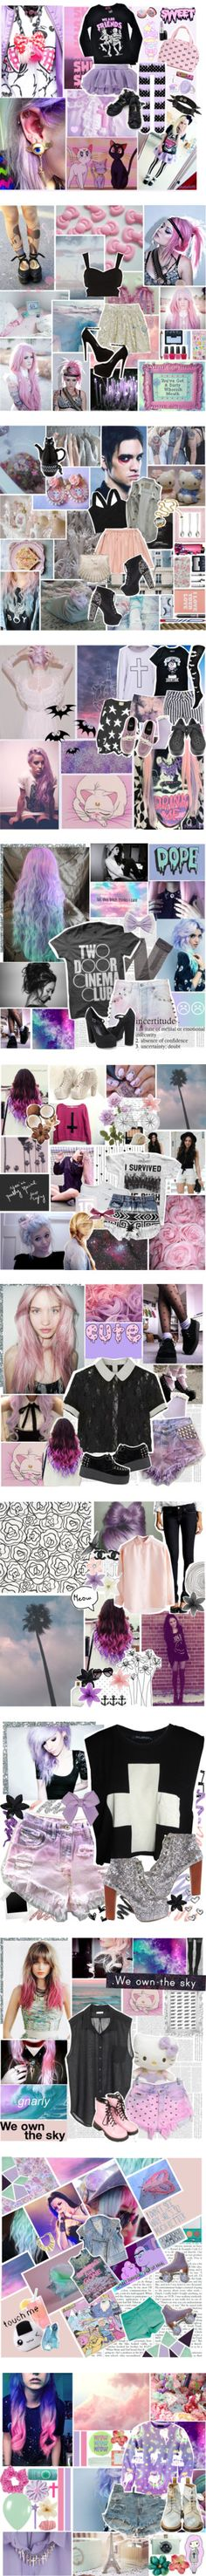 """""""The Best of Pastel Goth"""" by metronomeorchid ❤ liked on Polyvore"""